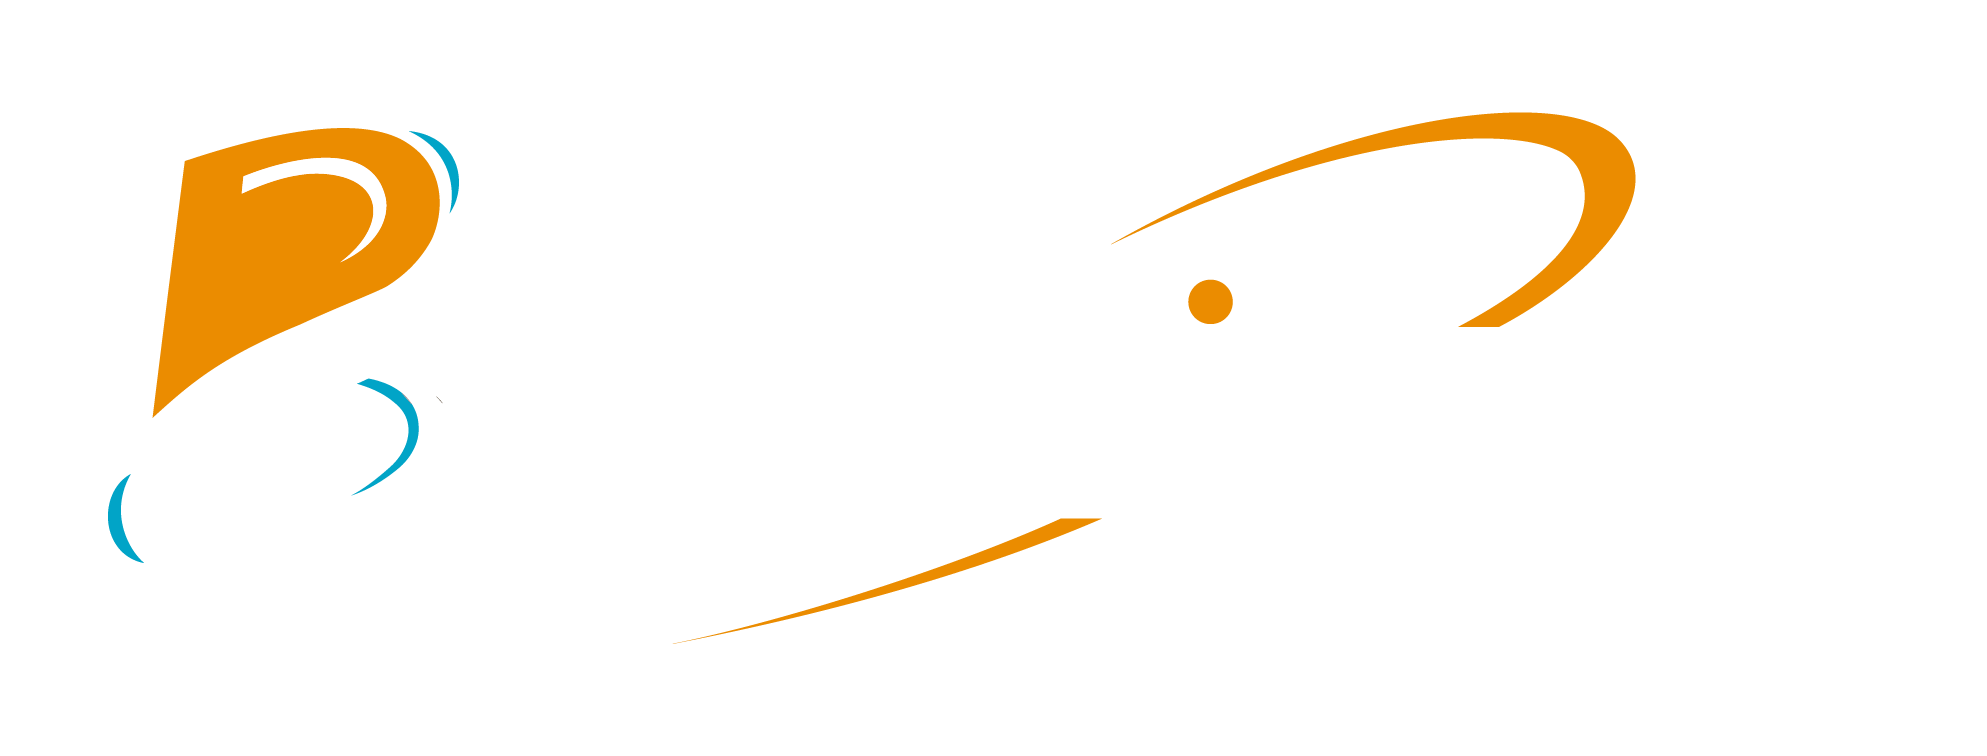 logo-blogue-traditours-complet-reverse